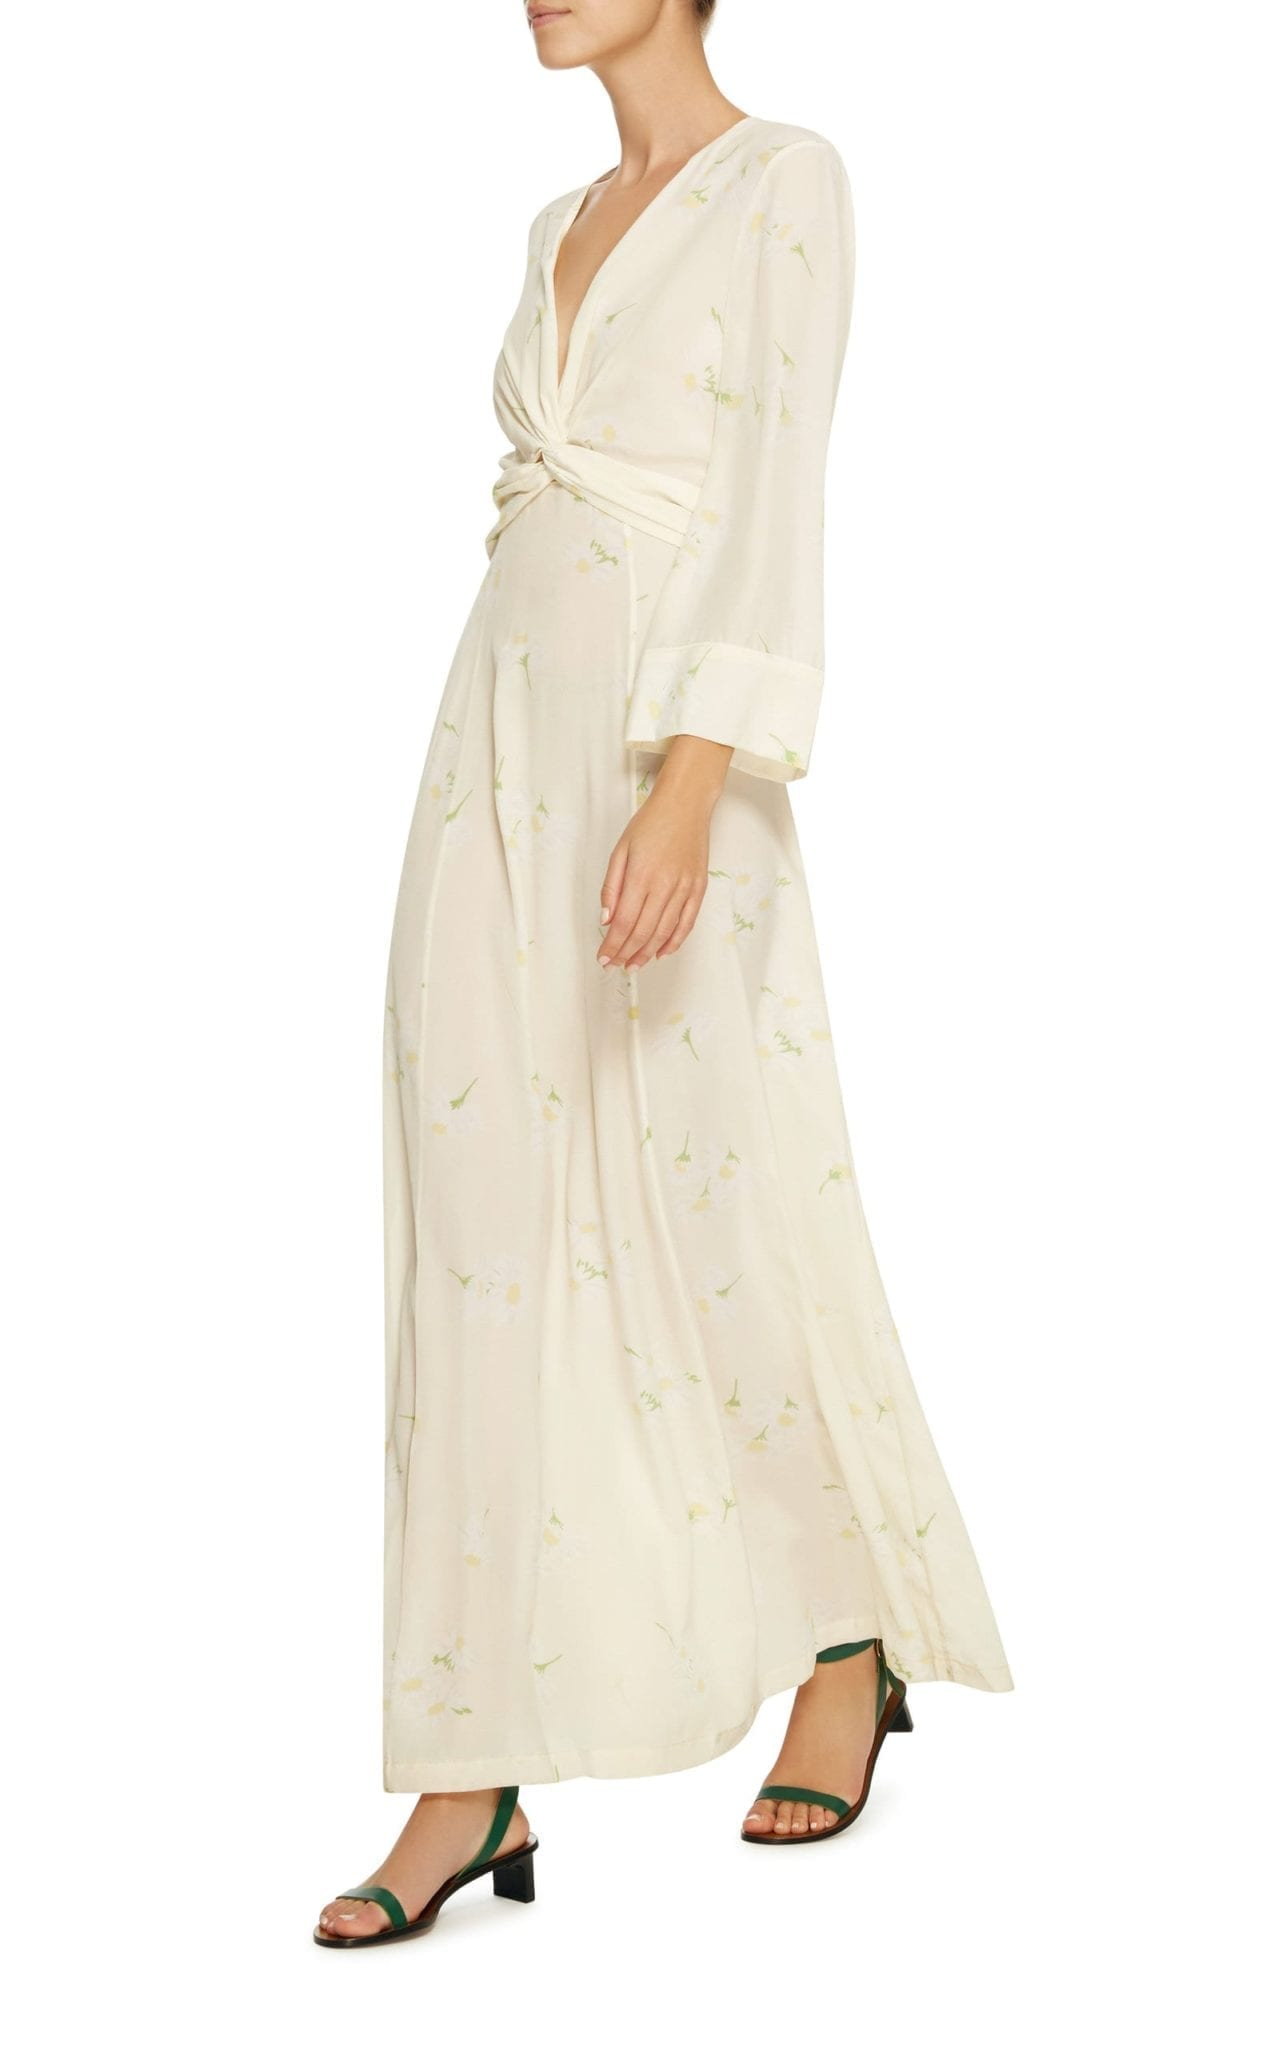 GANNI Nolana Tie Front Floral Silk Maxi White Dress